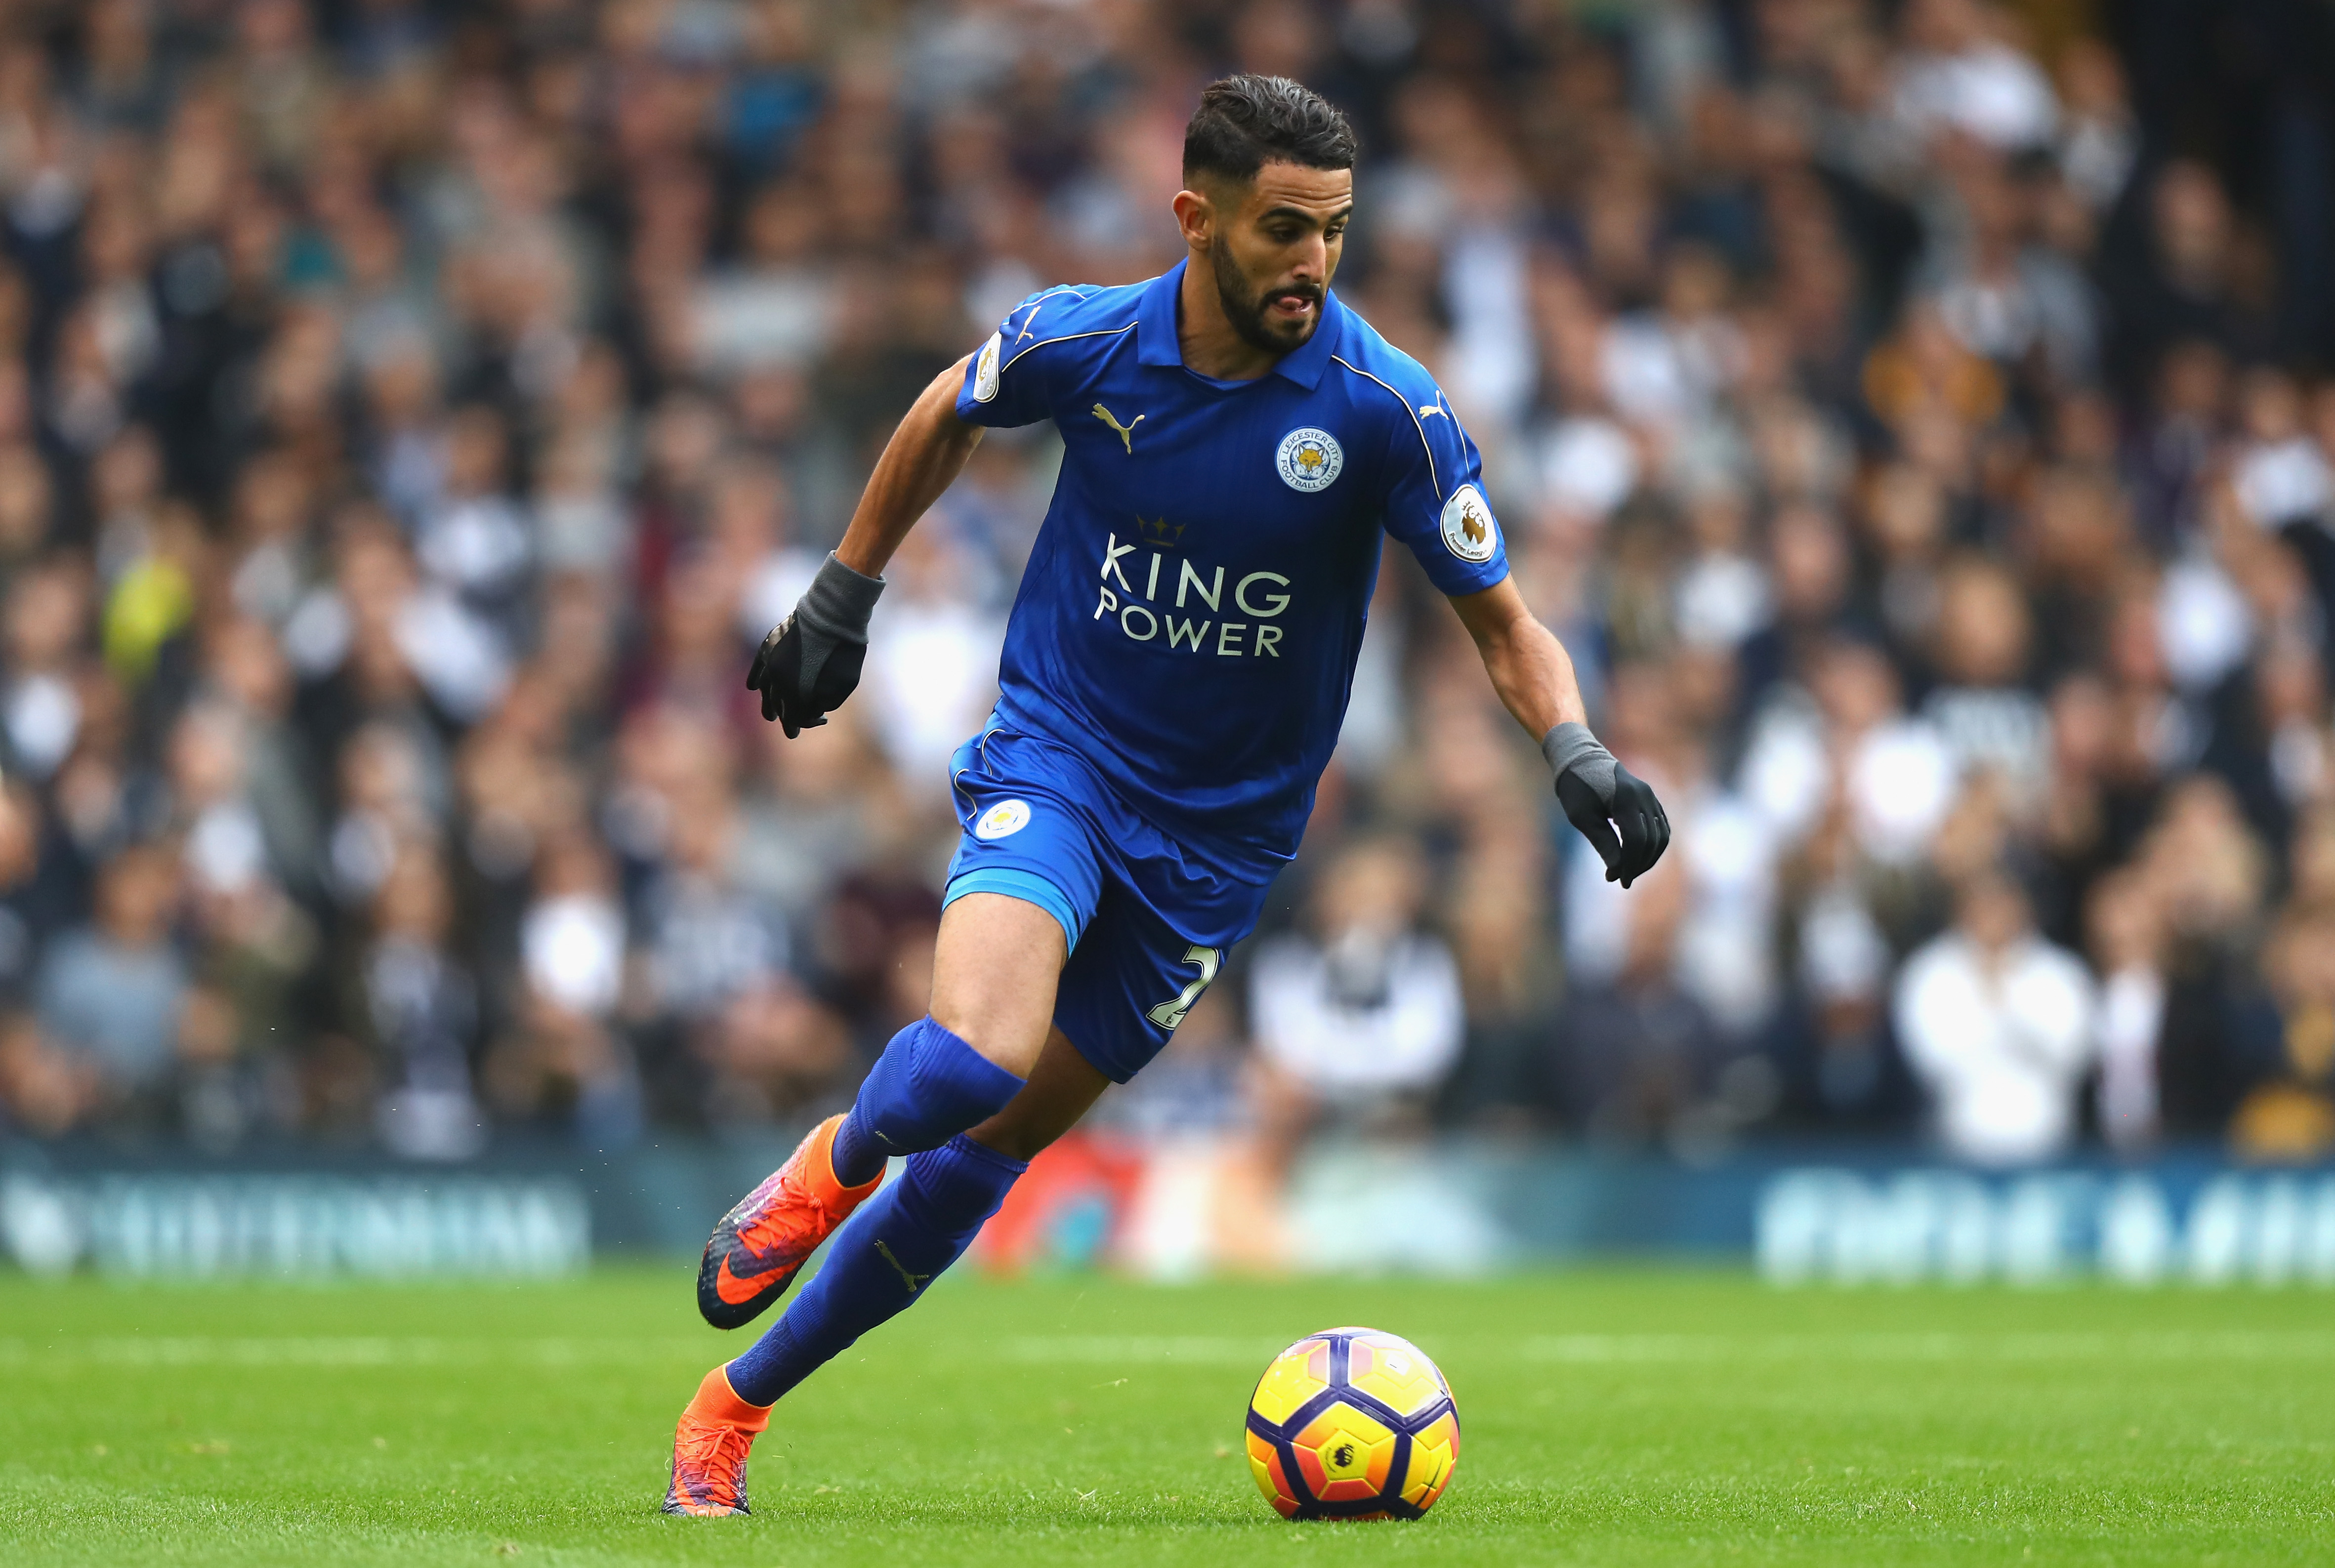 Riyad Mahrez could be a perfect signing for Arsenal (Photo courtesy Clive Rose/Getty Images)